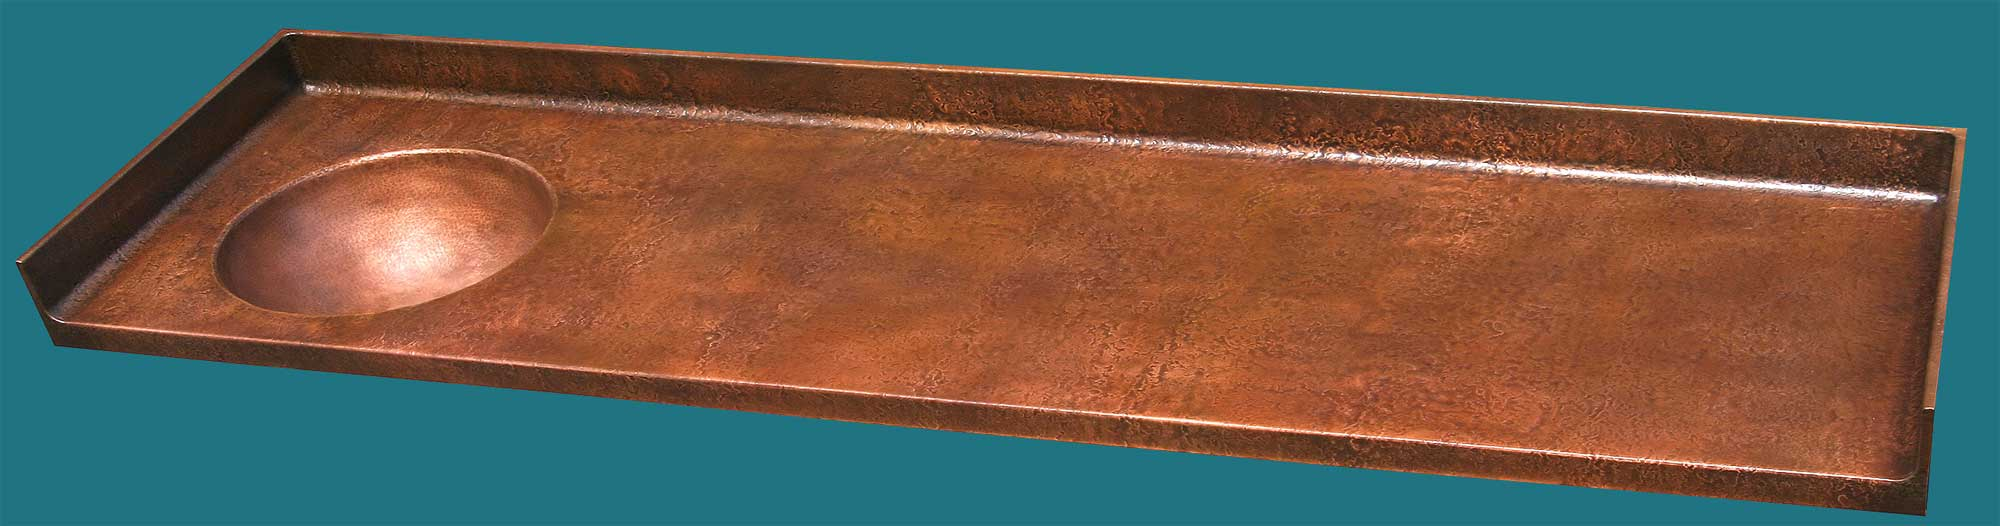 Handcrafted Metal: Copper Countertops and Integral Copper Sinks